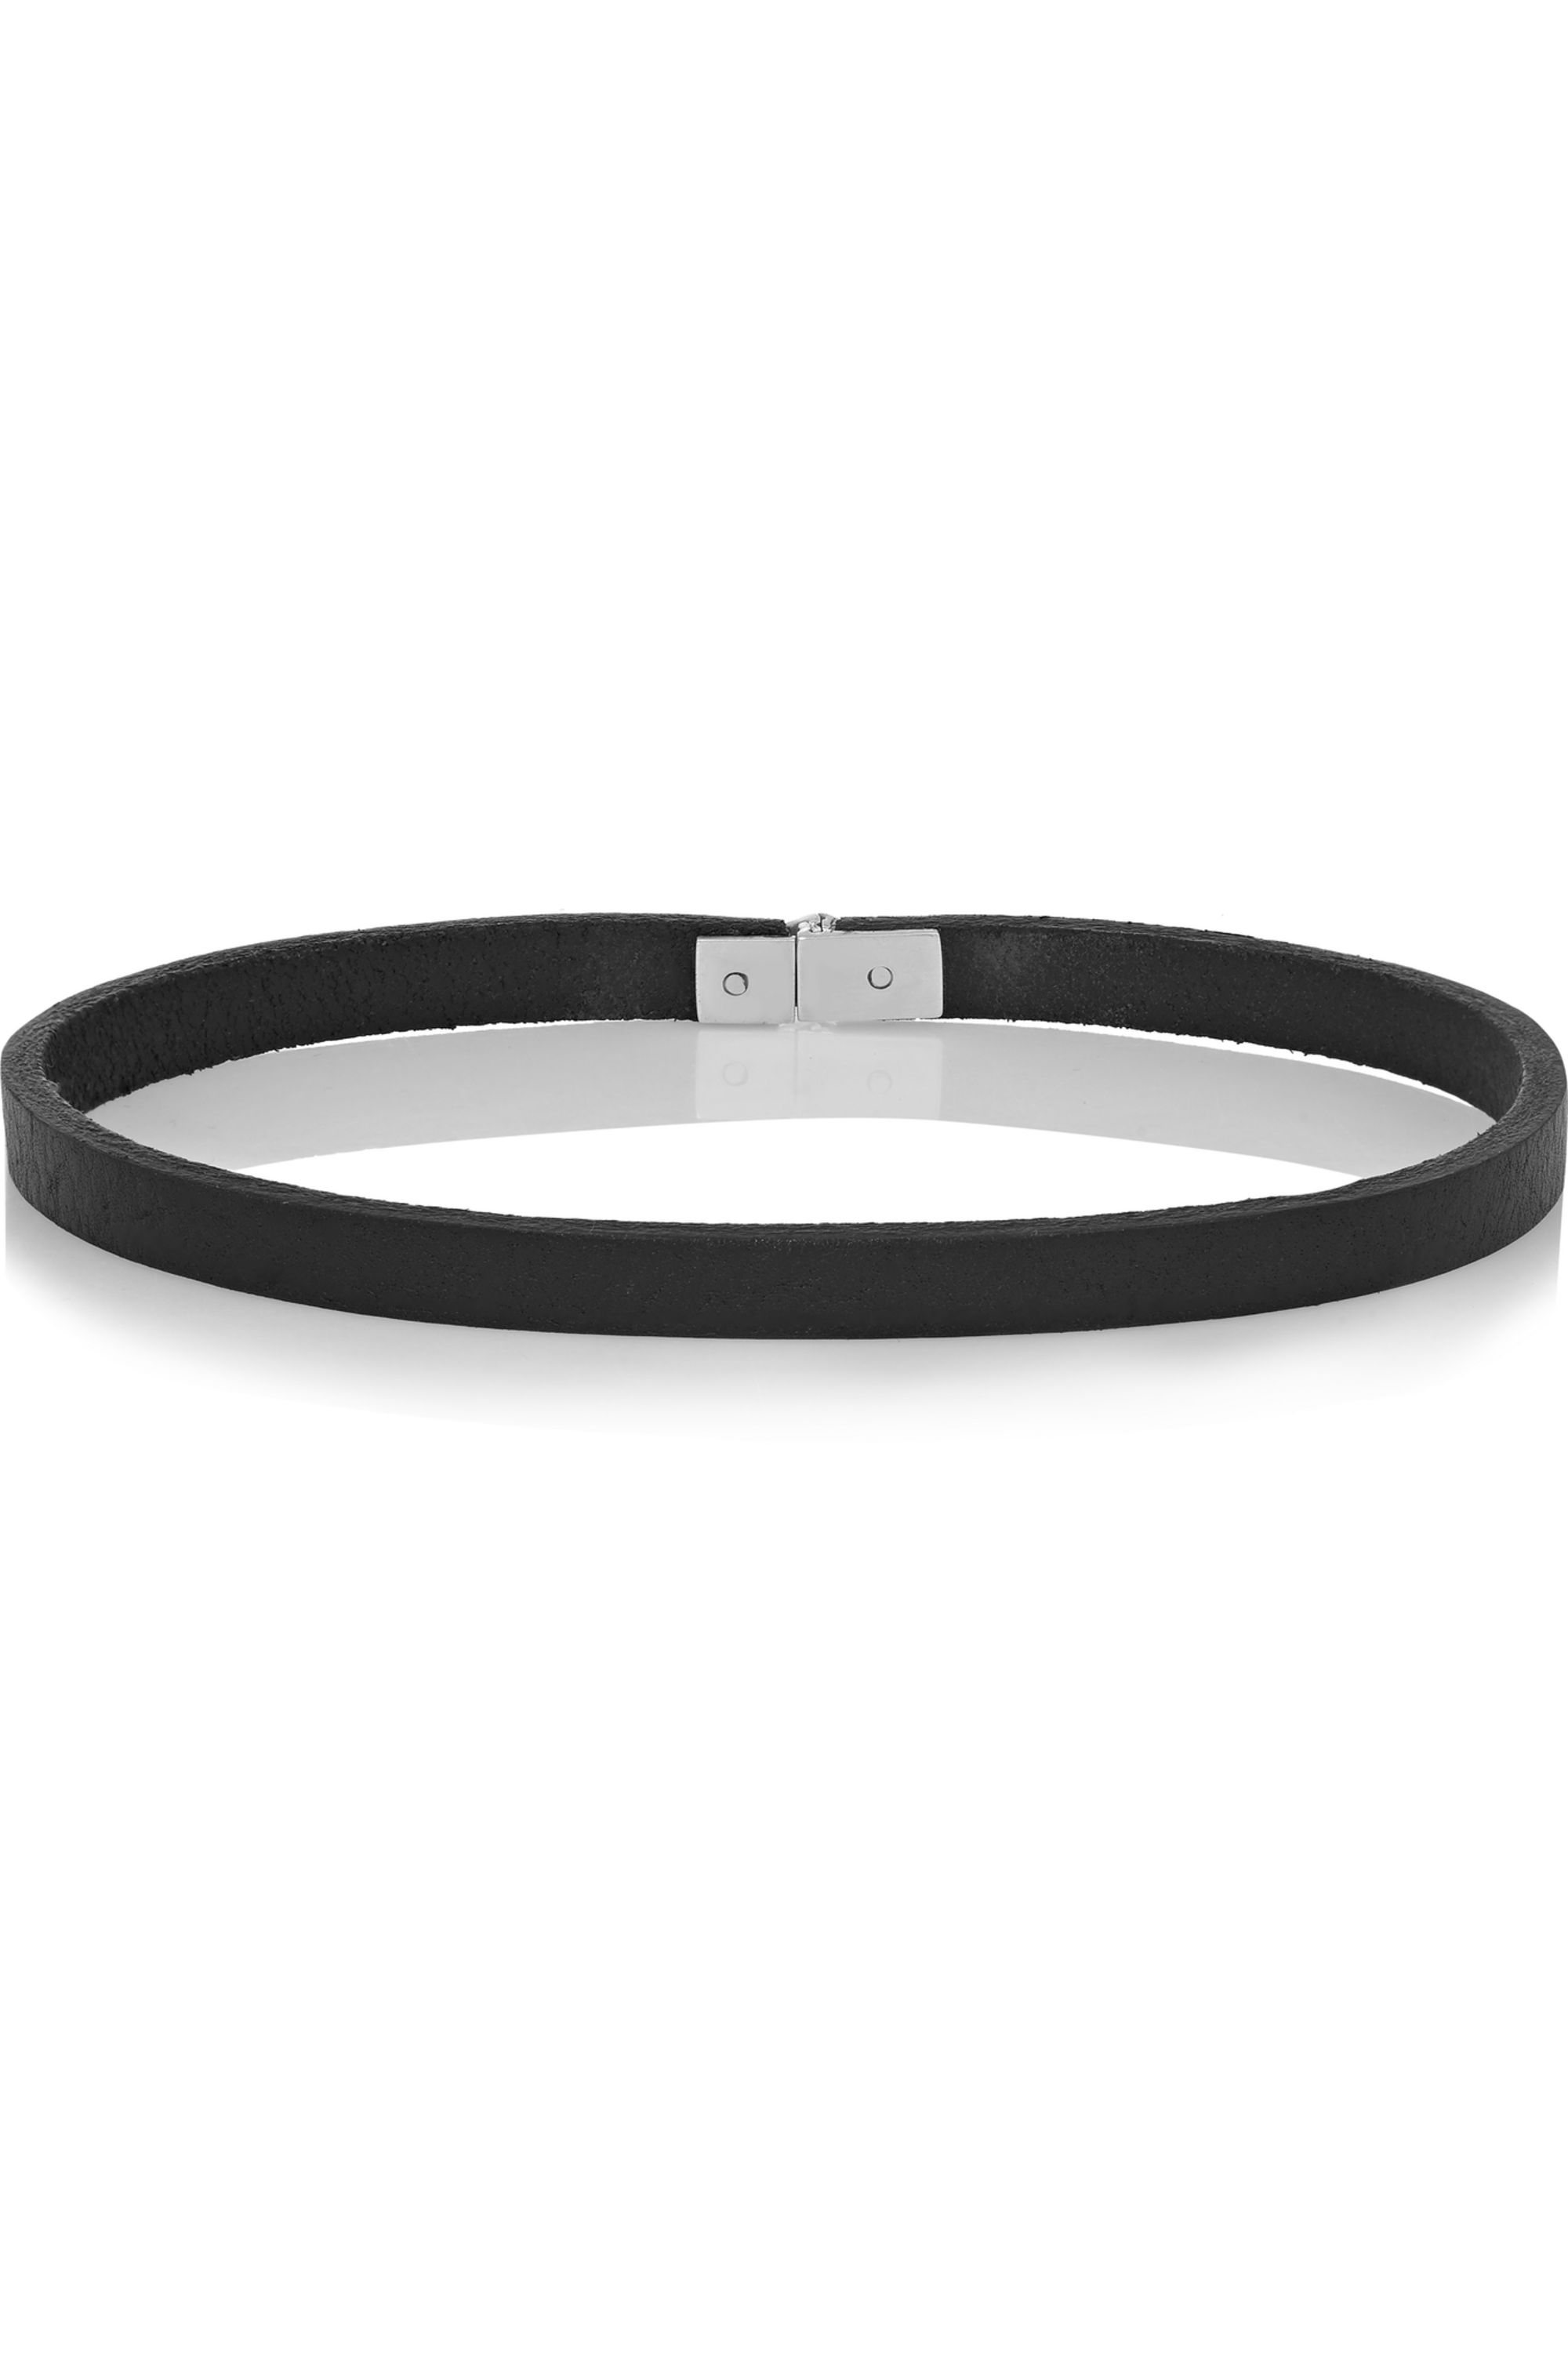 Wendy Nichol Textured-leather and sterling silver choker